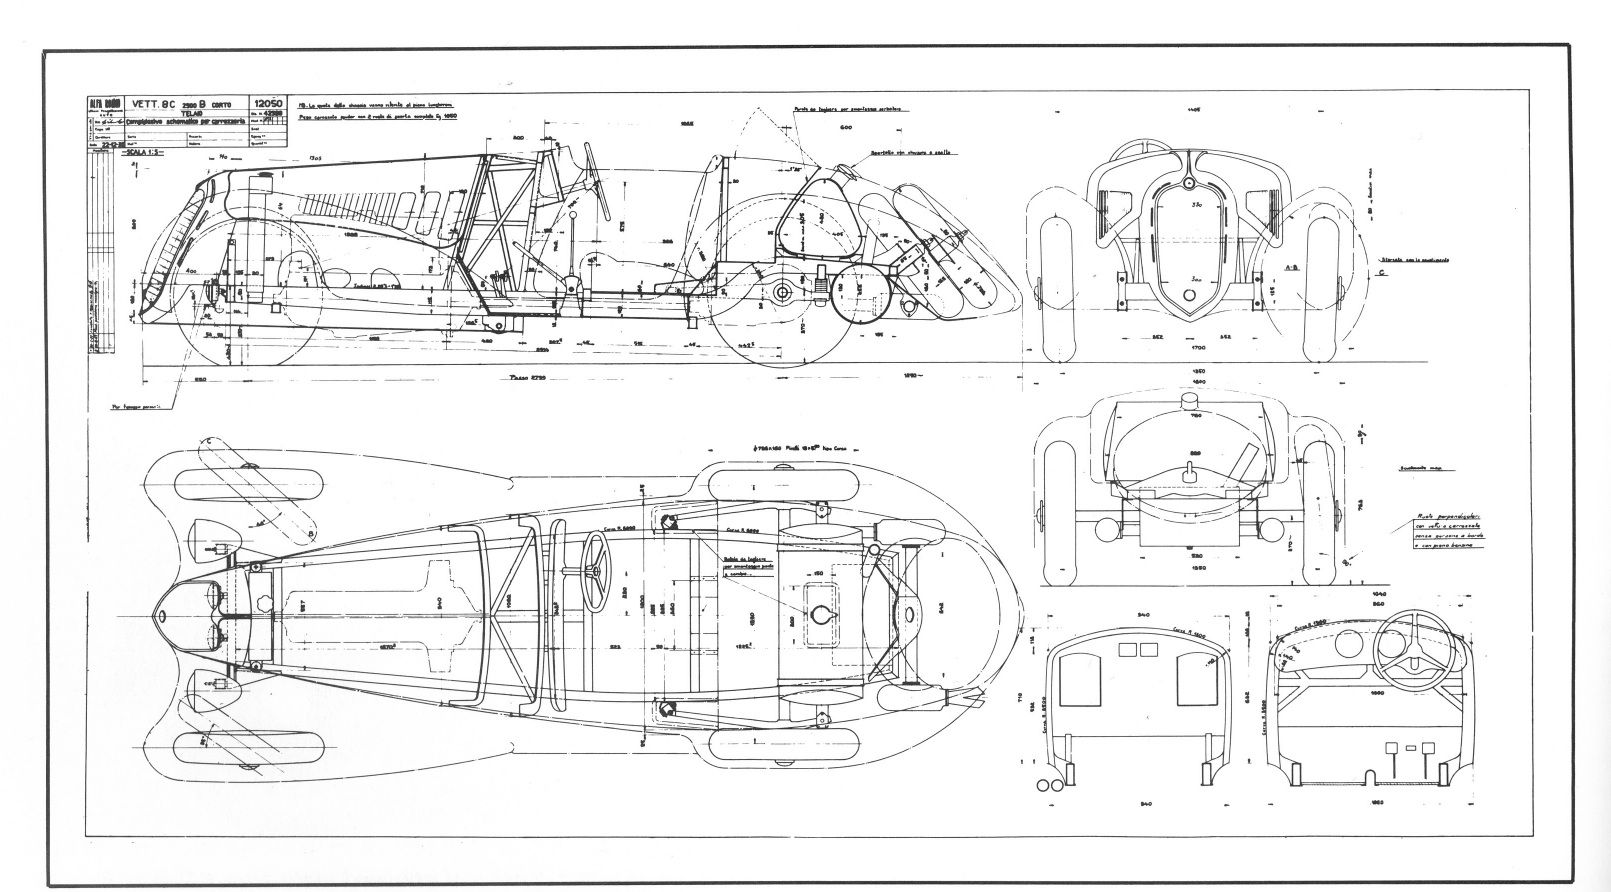 medium resolution of alfa romeo 8c 2900 1938 smcars net car blueprints forum